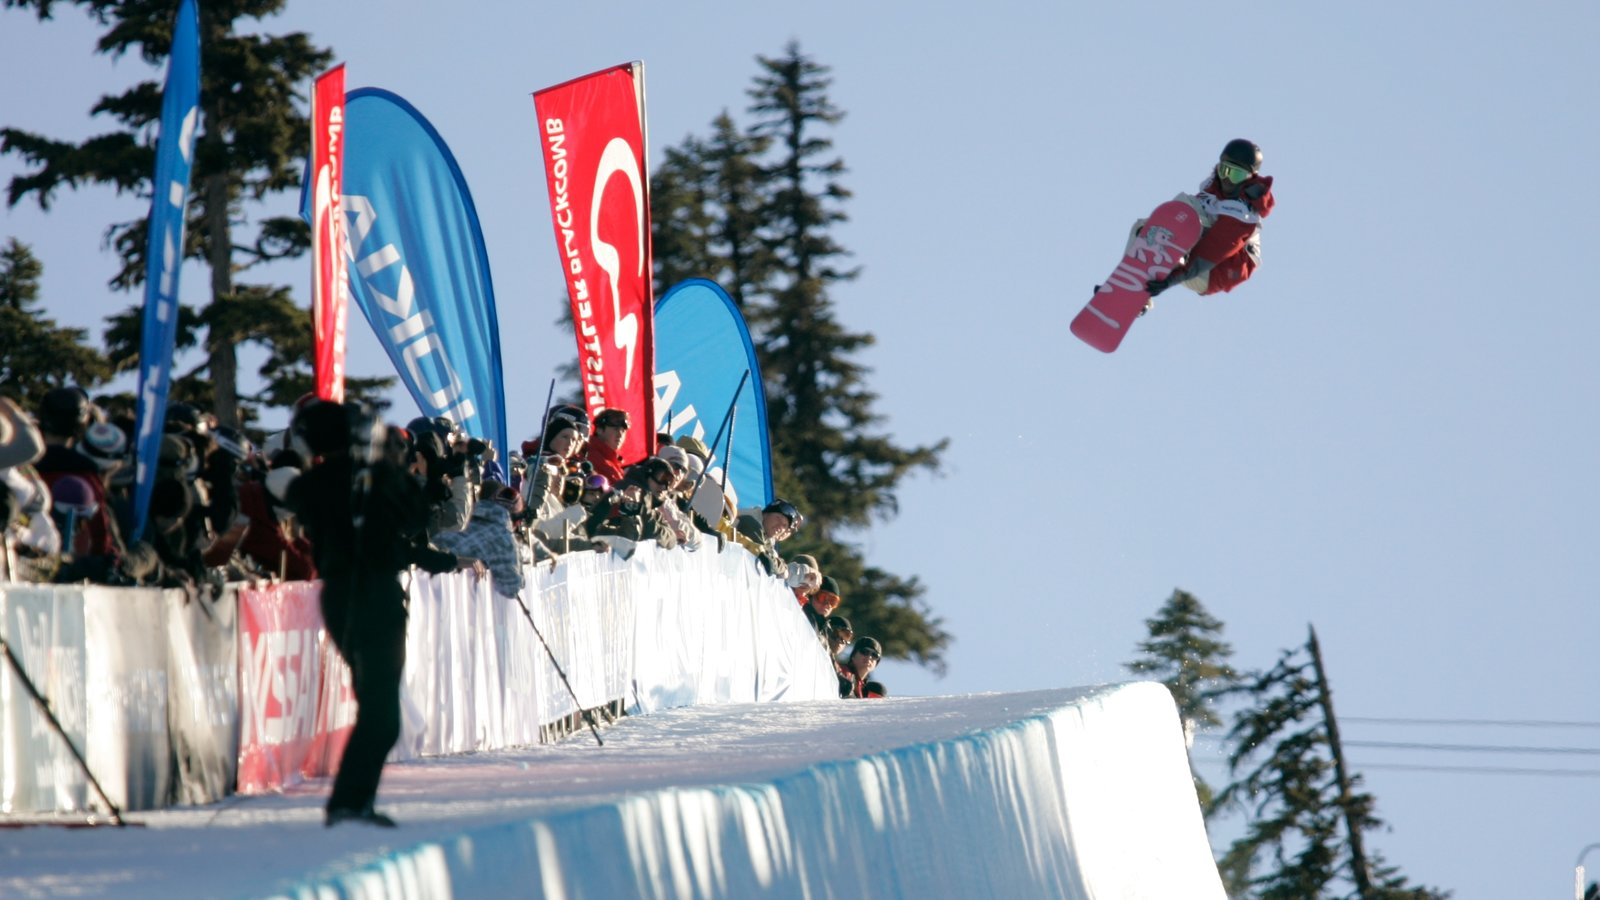 Whistler Blackcomb Ski Resort showing snow, snow boarding and a luxury hotel or resort